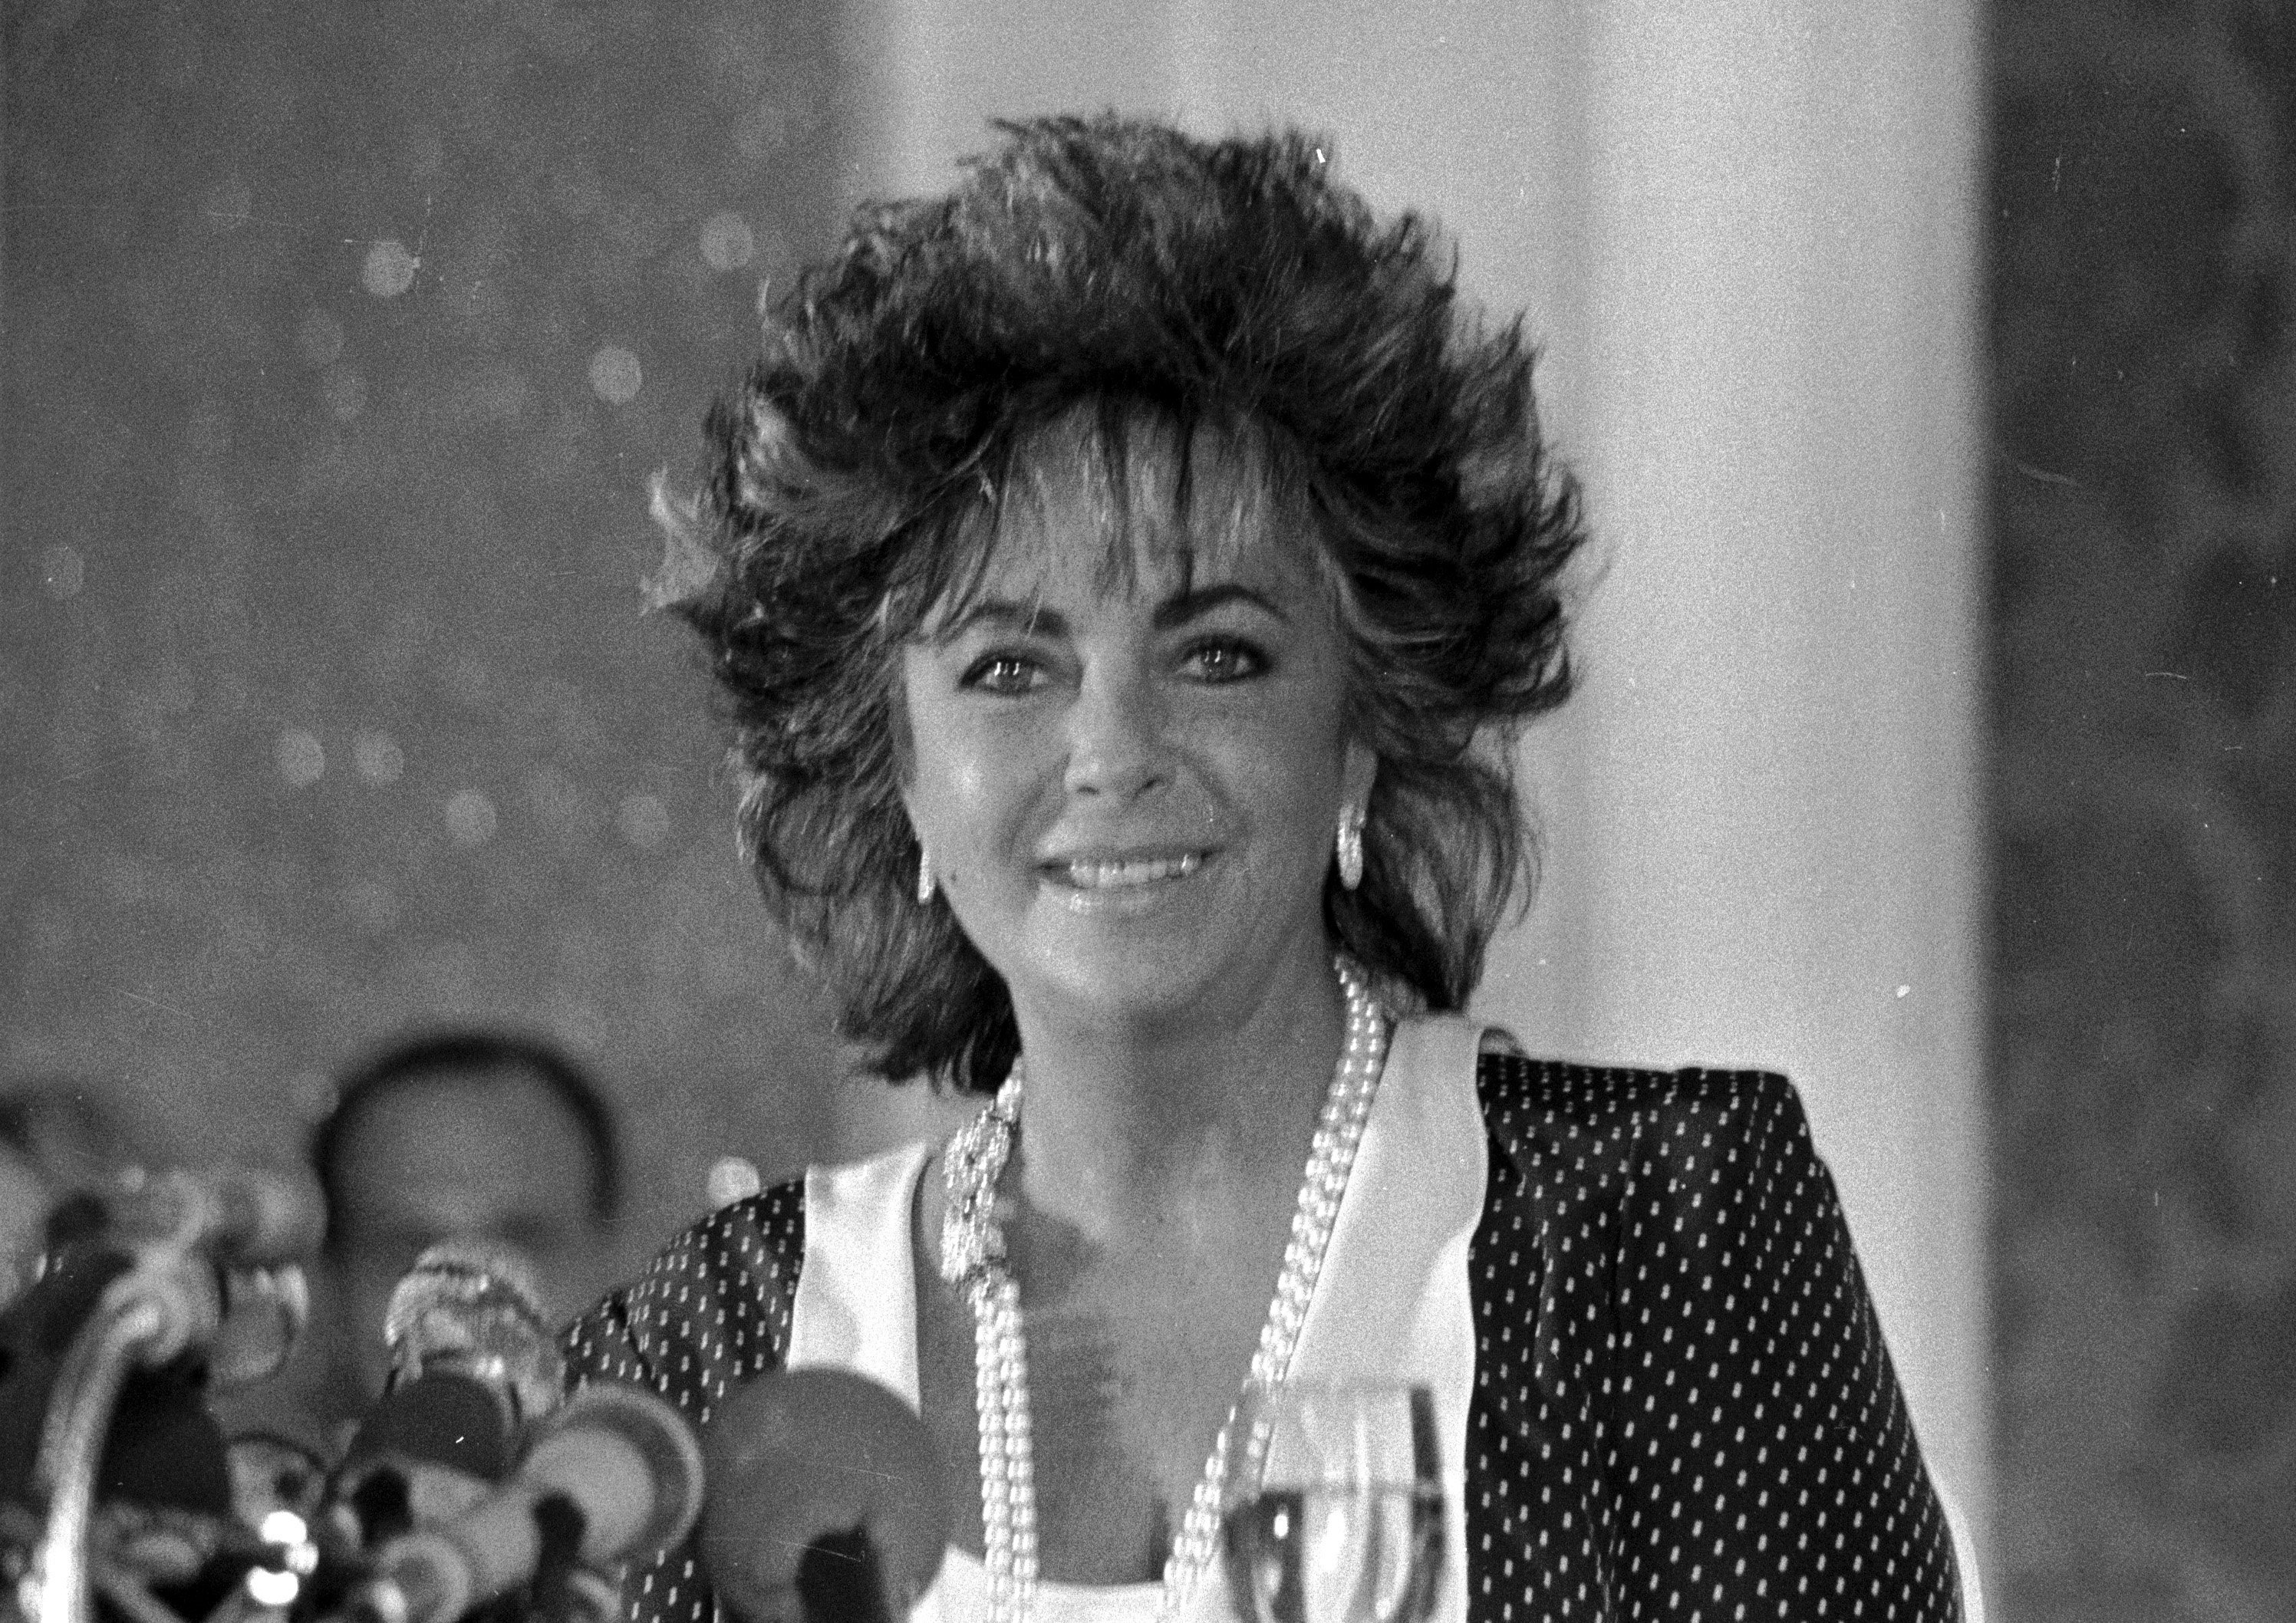 Elizabeth Taylor at the American Film Festival of Deauville in Normandy, France in 1985. | Source: Wikimedia Commons